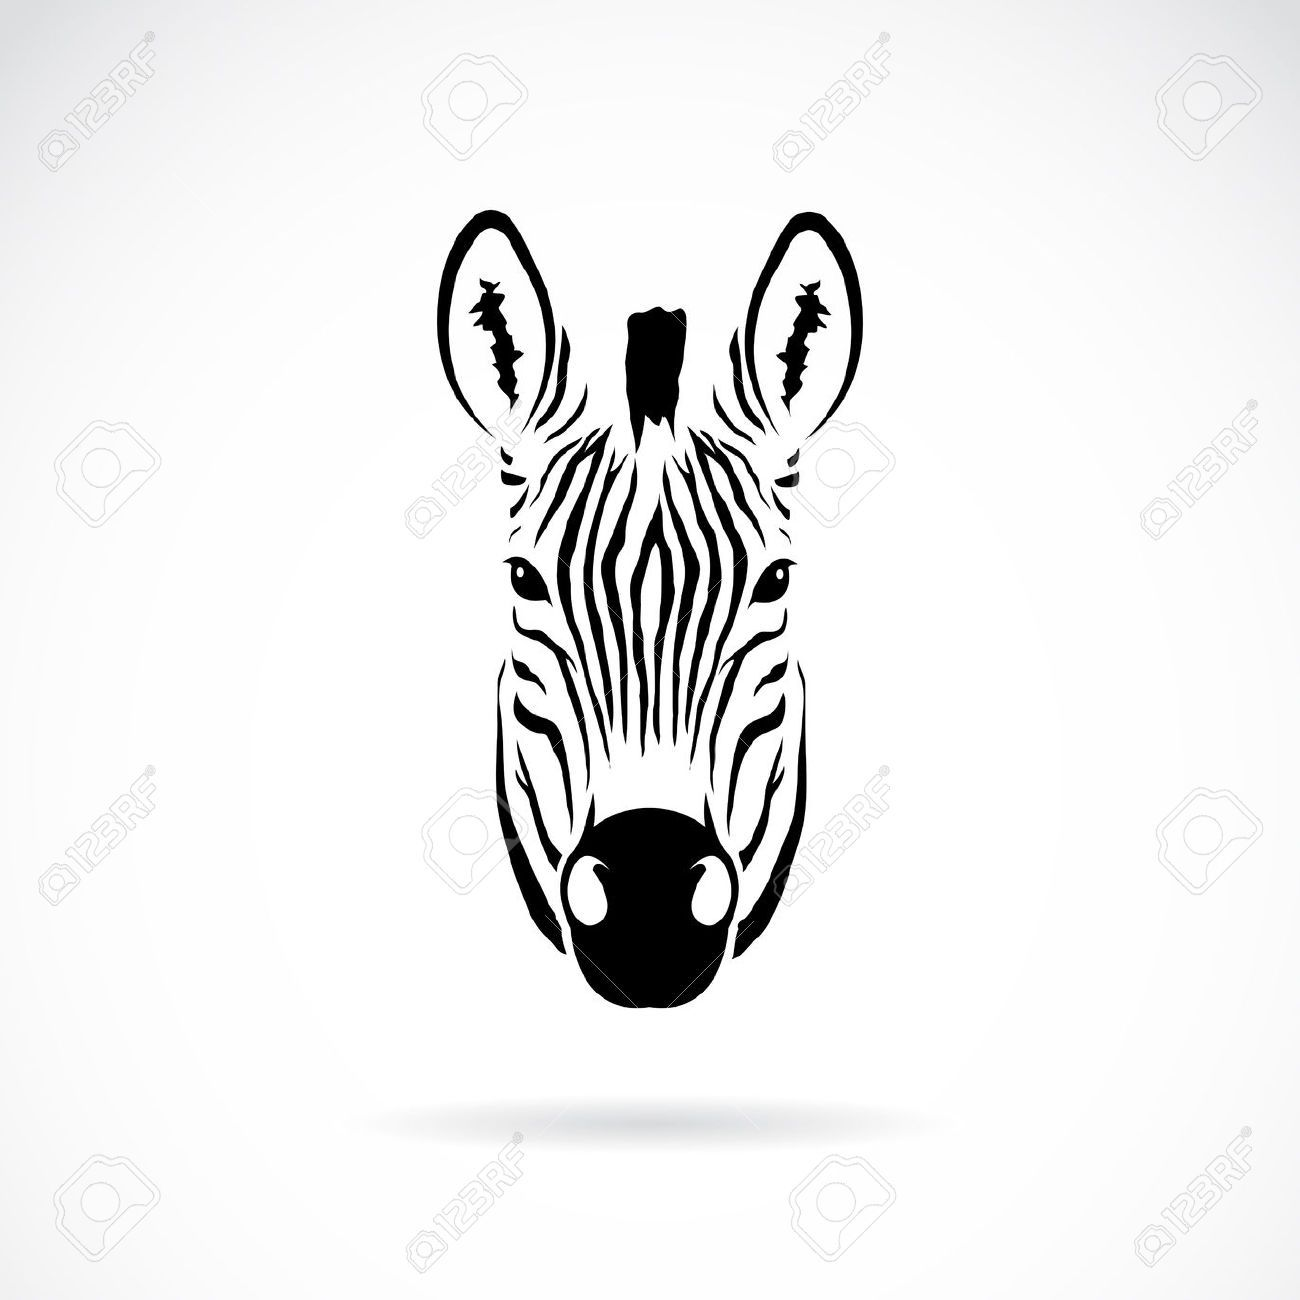 Head on google search. Clipart zebra front